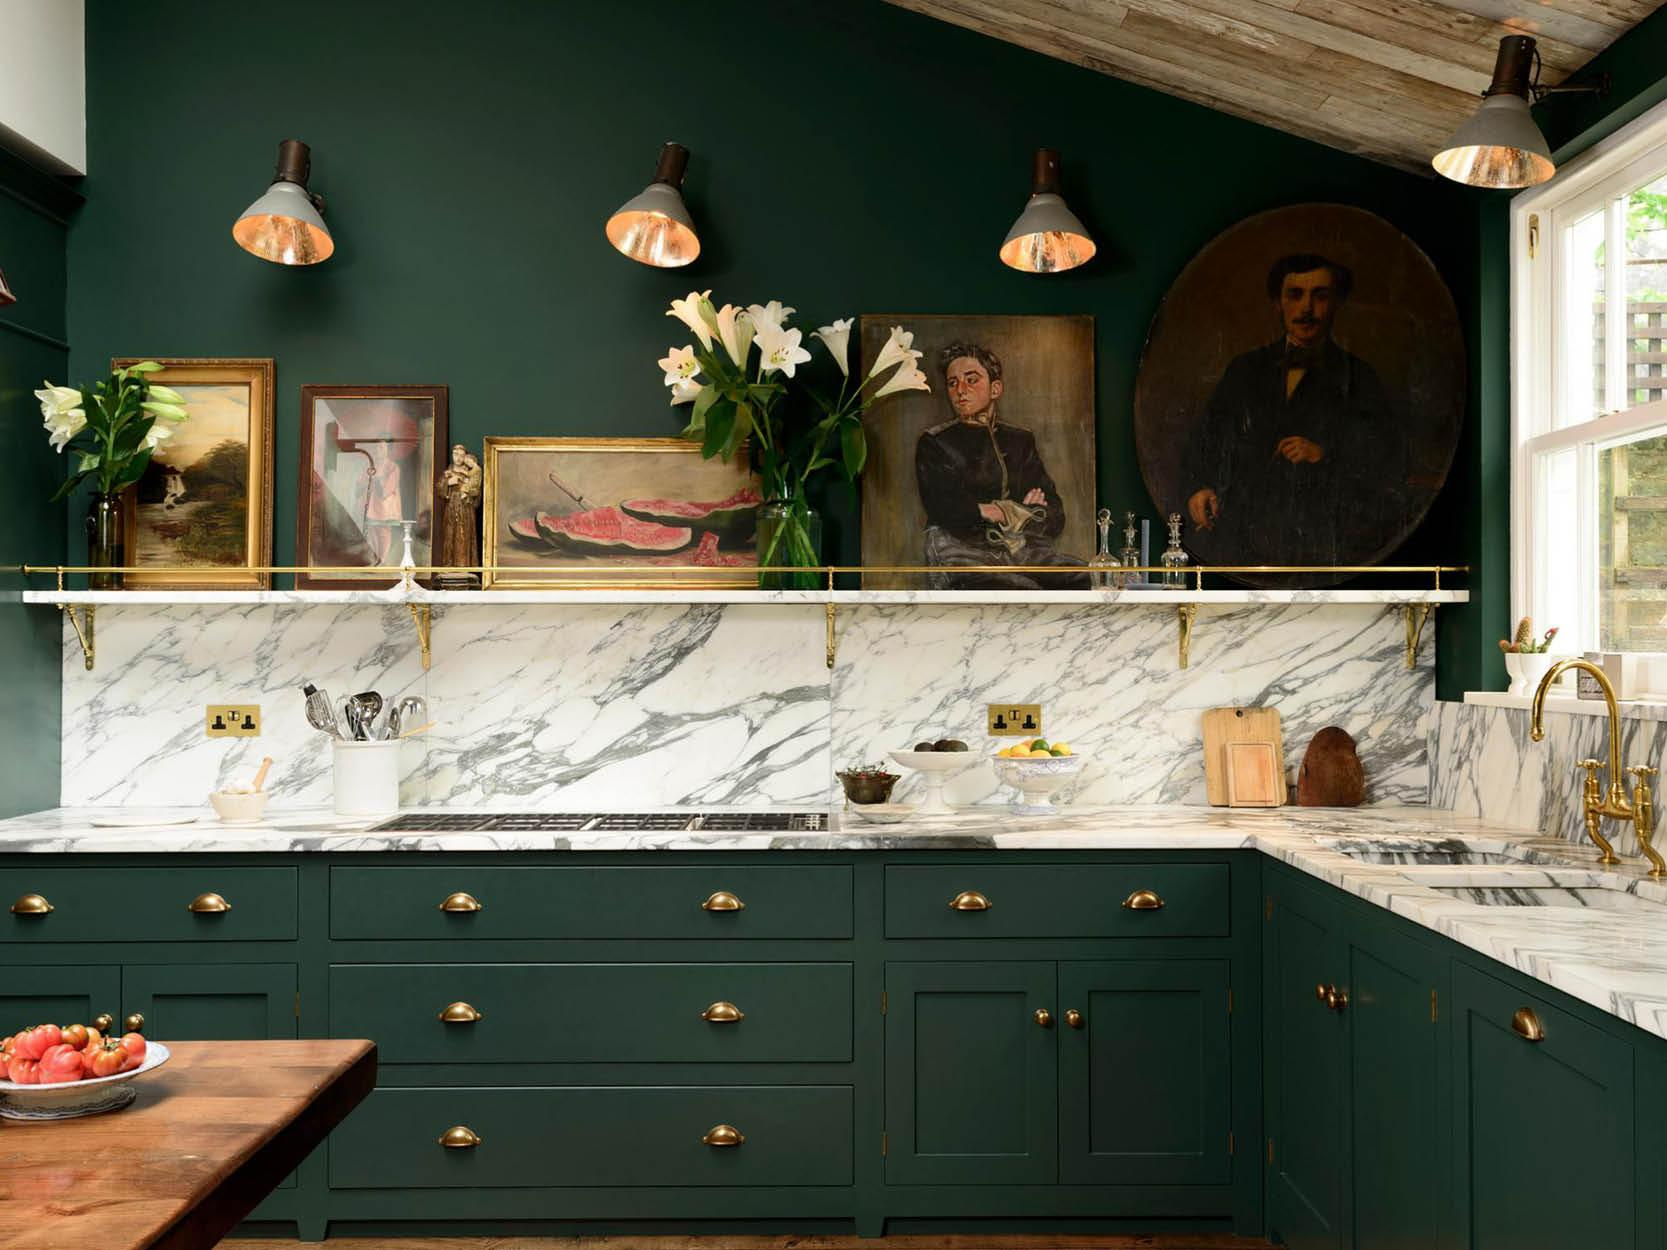 Marble Worktops & Splashbacks via Devol Kitchen